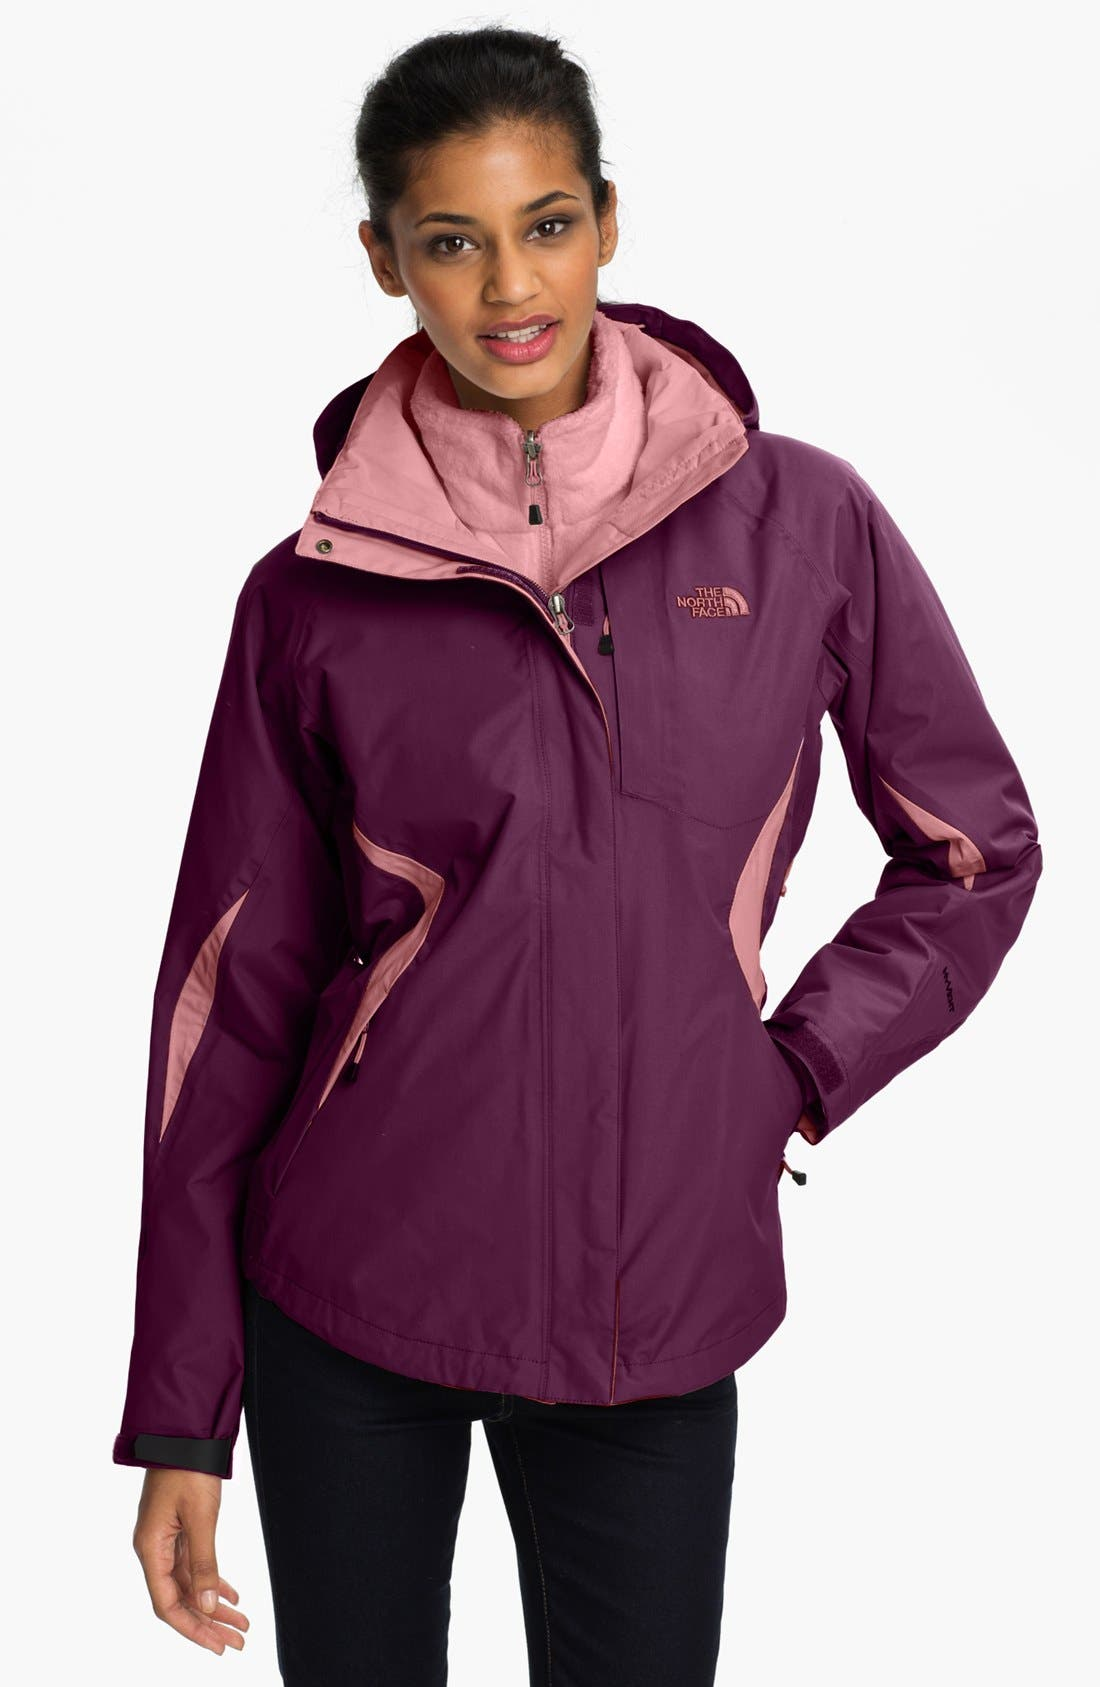 Main Image - The North Face 'Boundary' Tri-Climate Jacket